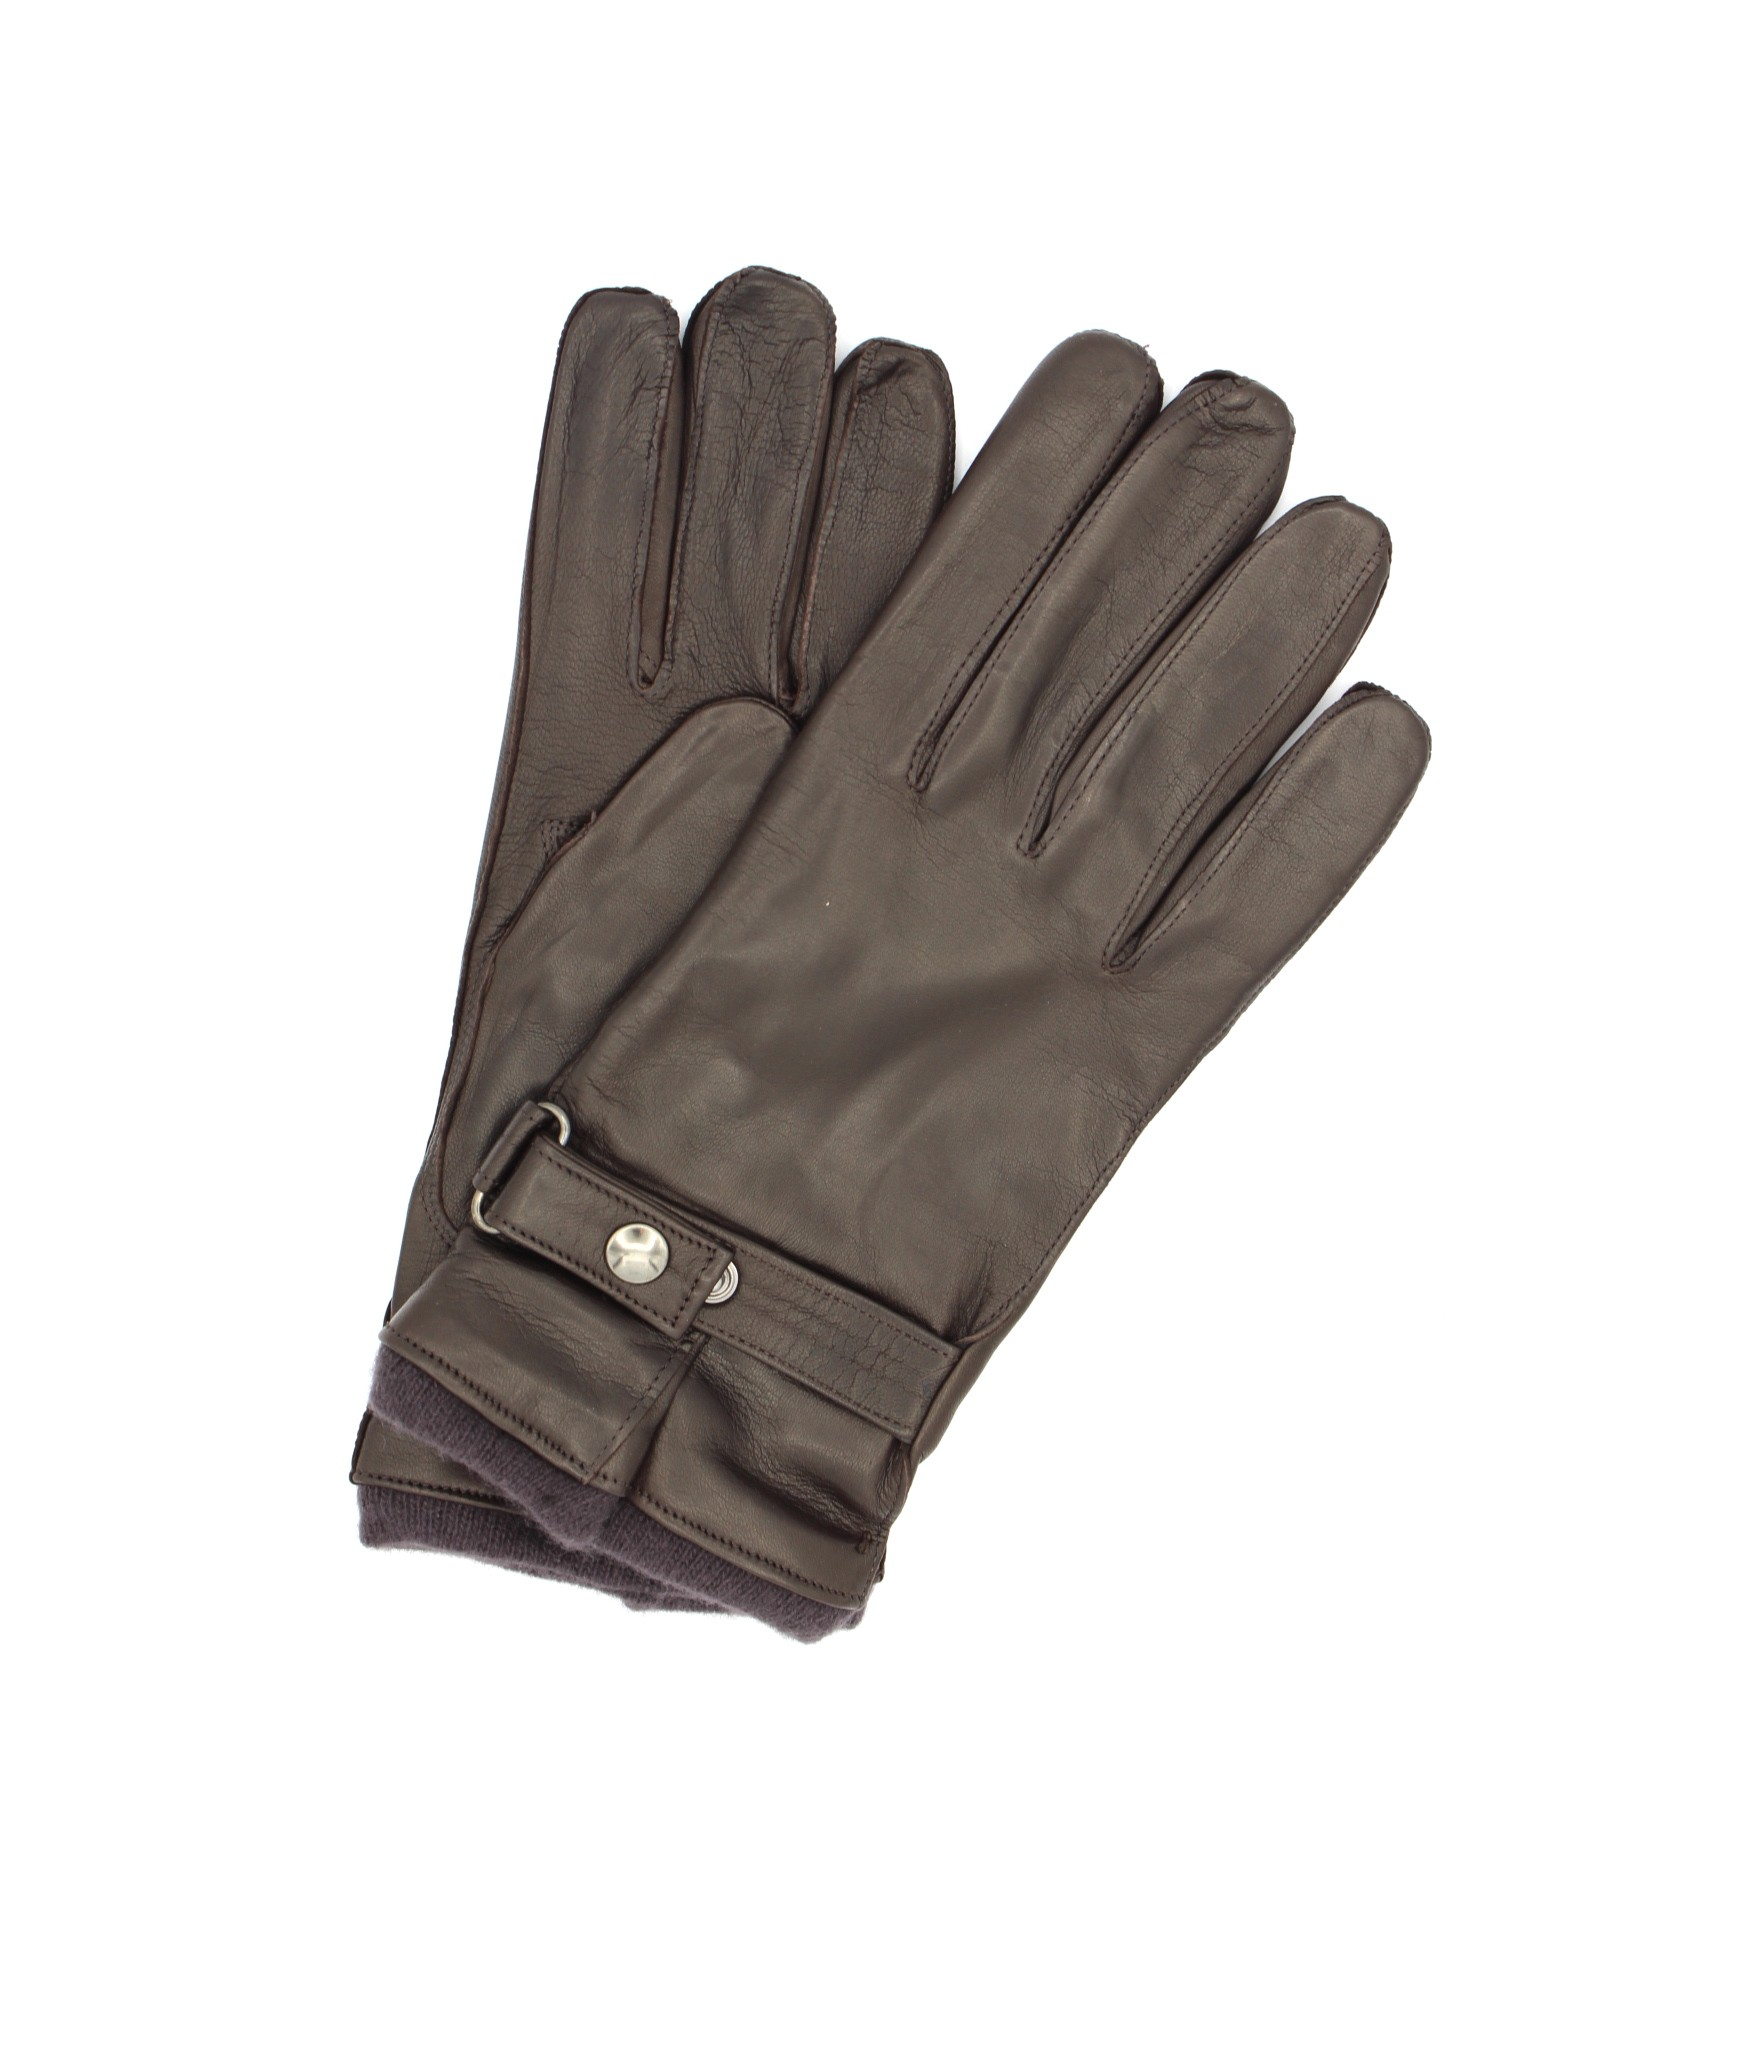 Nappa leather gloves cashmere lined with strap Dark Brown